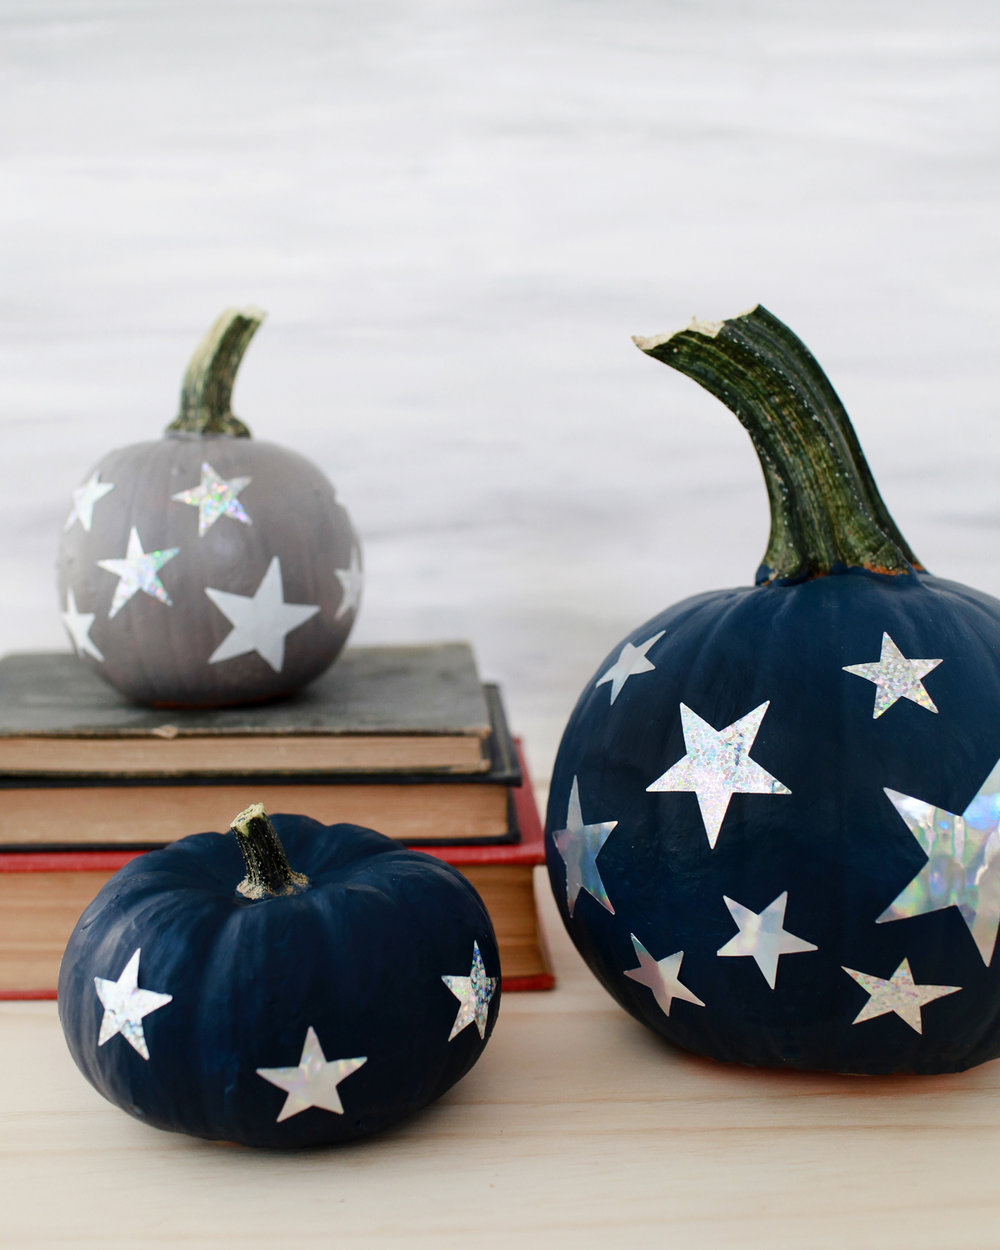 DIY-Moon-and-Stars-Halloween-Pumpkins-13.jpg